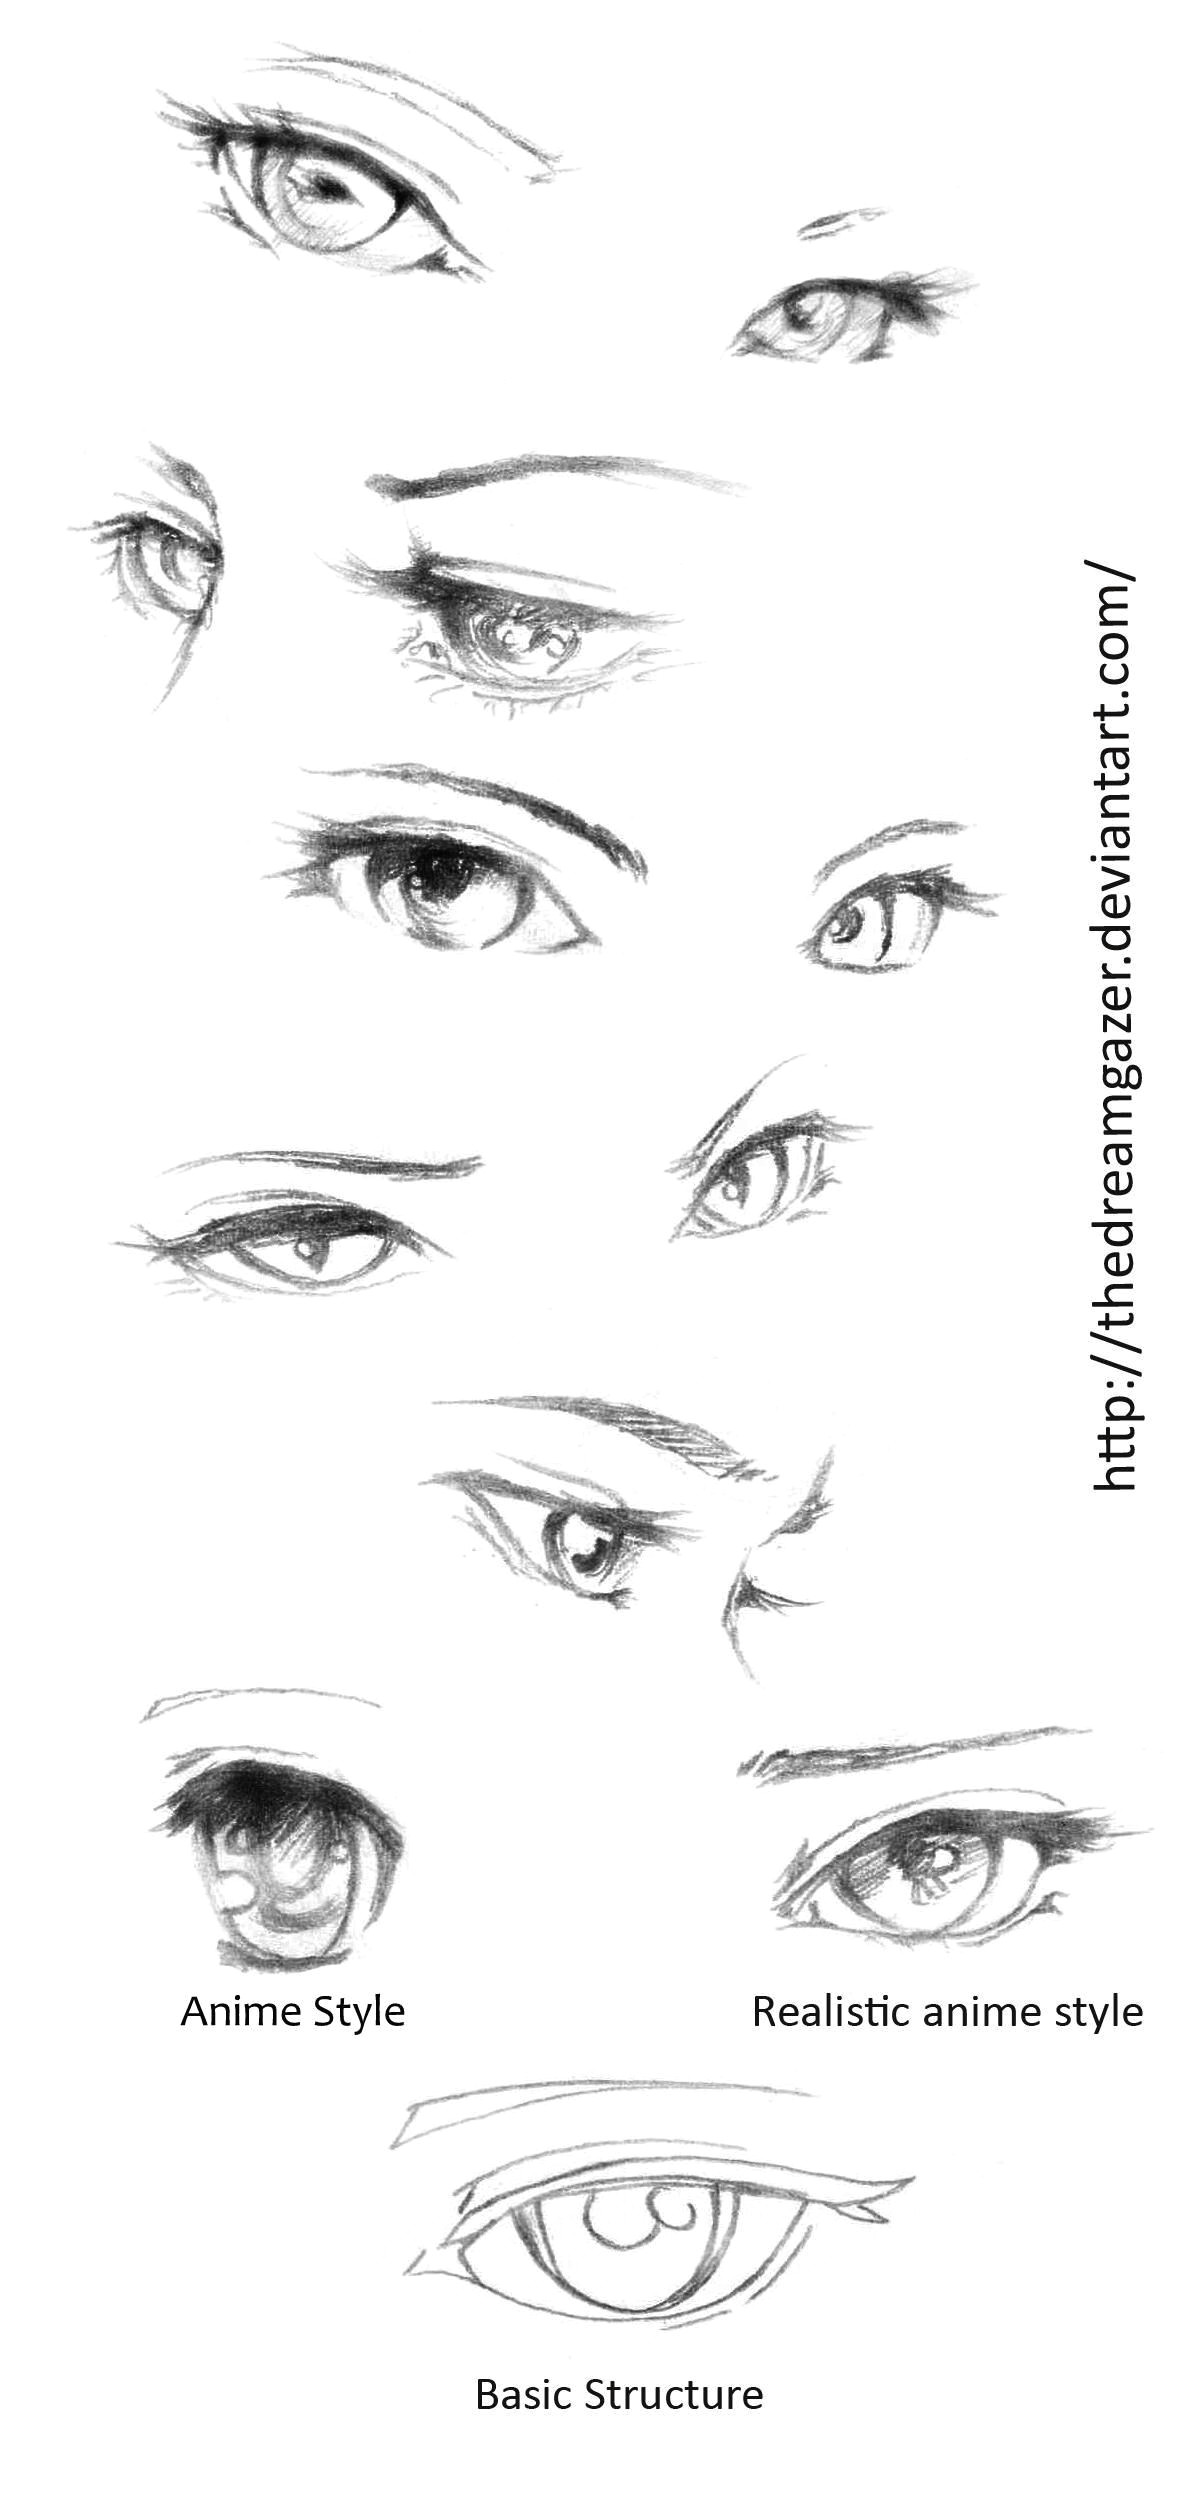 anime drawing tutorials anime drawing styles anime drawings sketches eye drawings anime